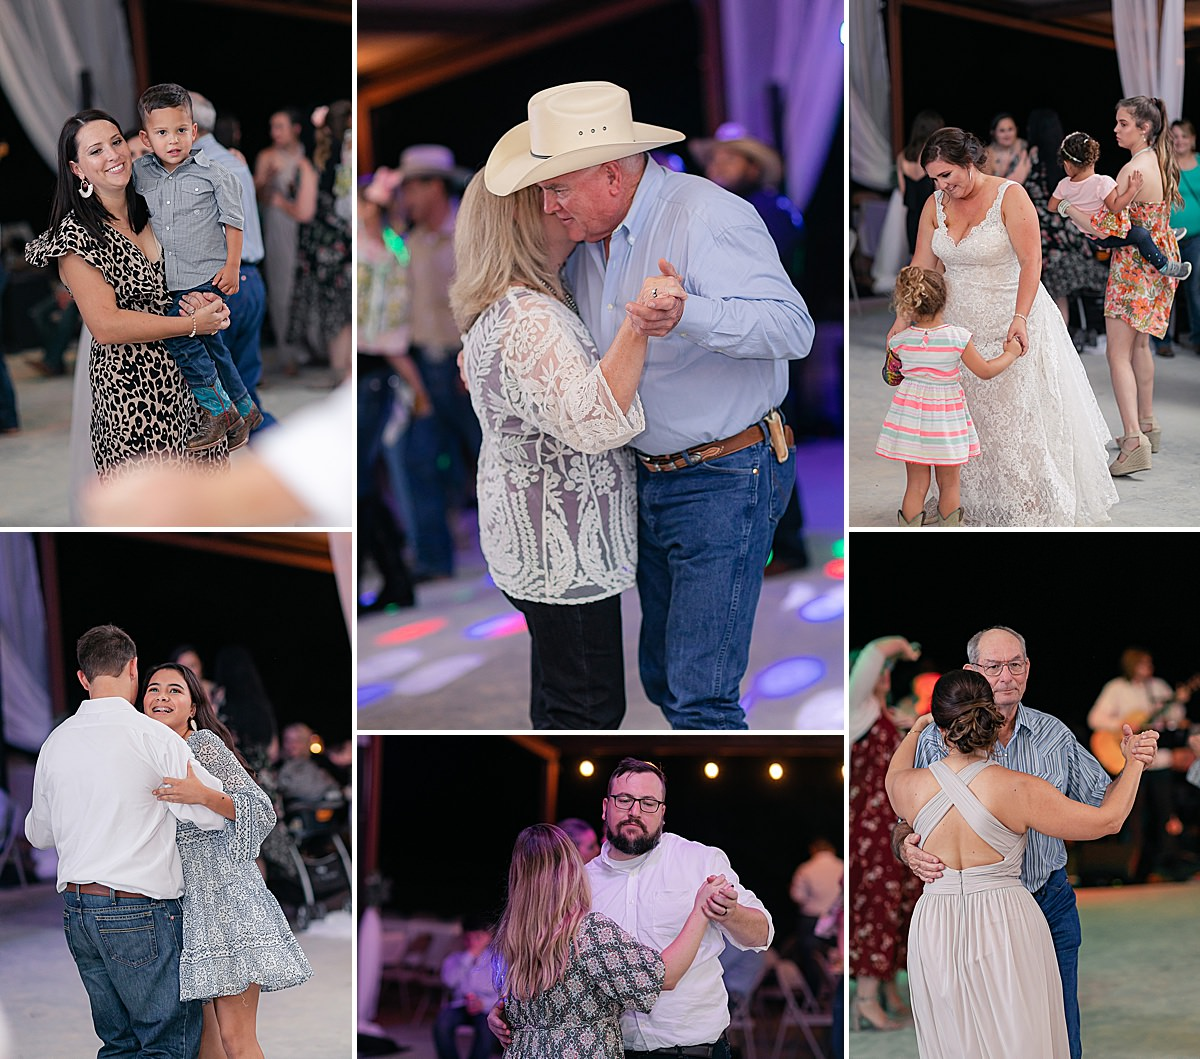 Rustic-Texas-Wedding-Hollow-Creek-Ranch-Carly-Barton-Photography_0028.jpg